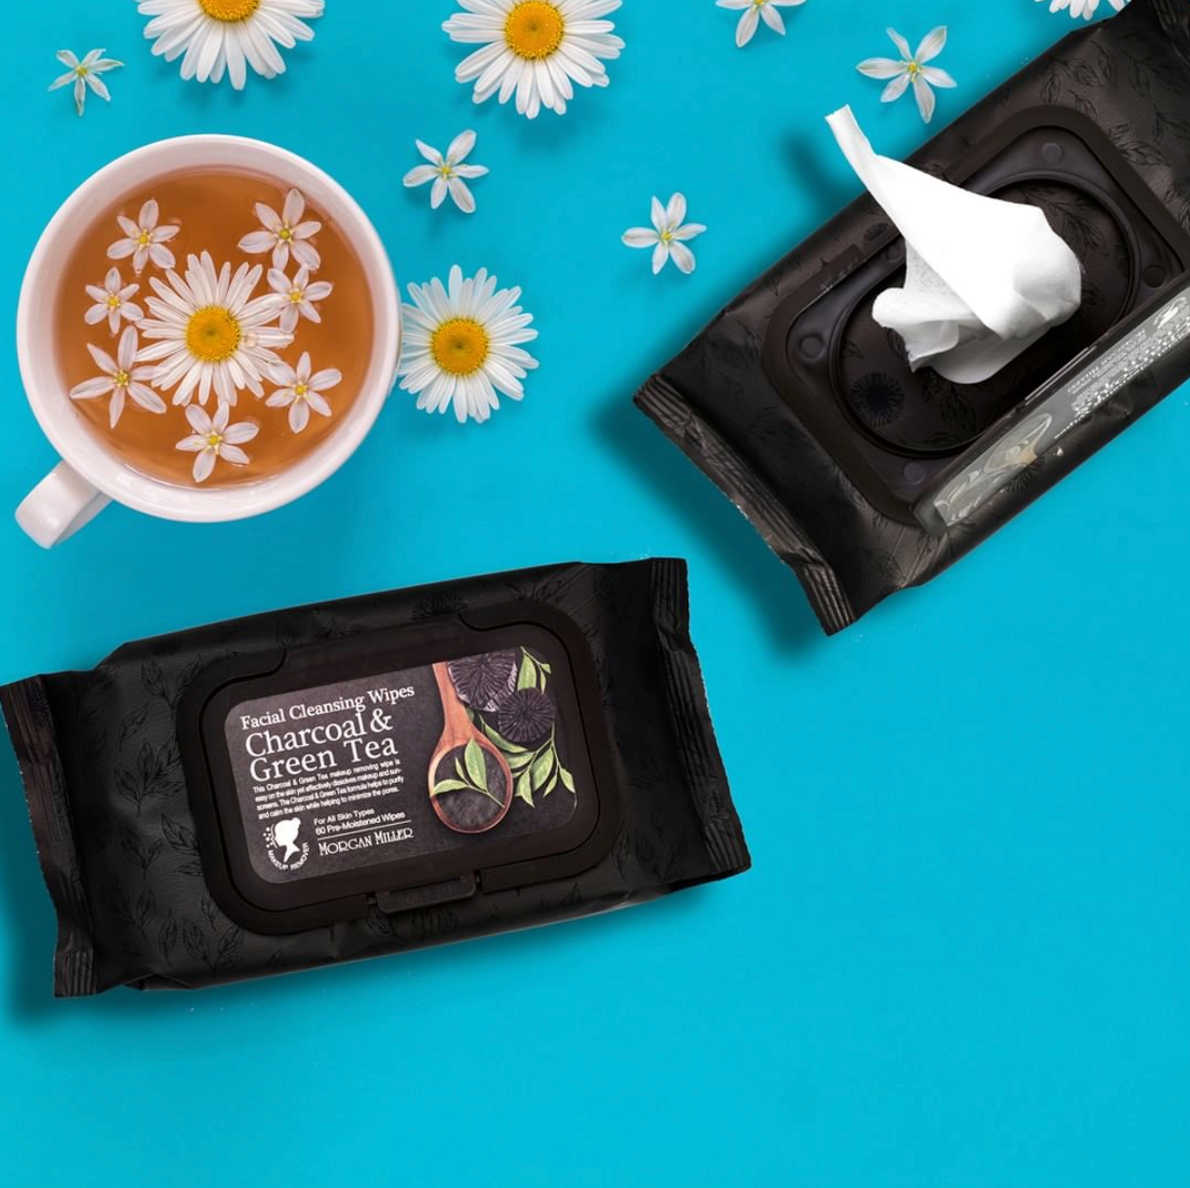 Morgan Miller Facial Cleansing Wipes with Charcoal & Green Tea flat laid next to tea and flowers